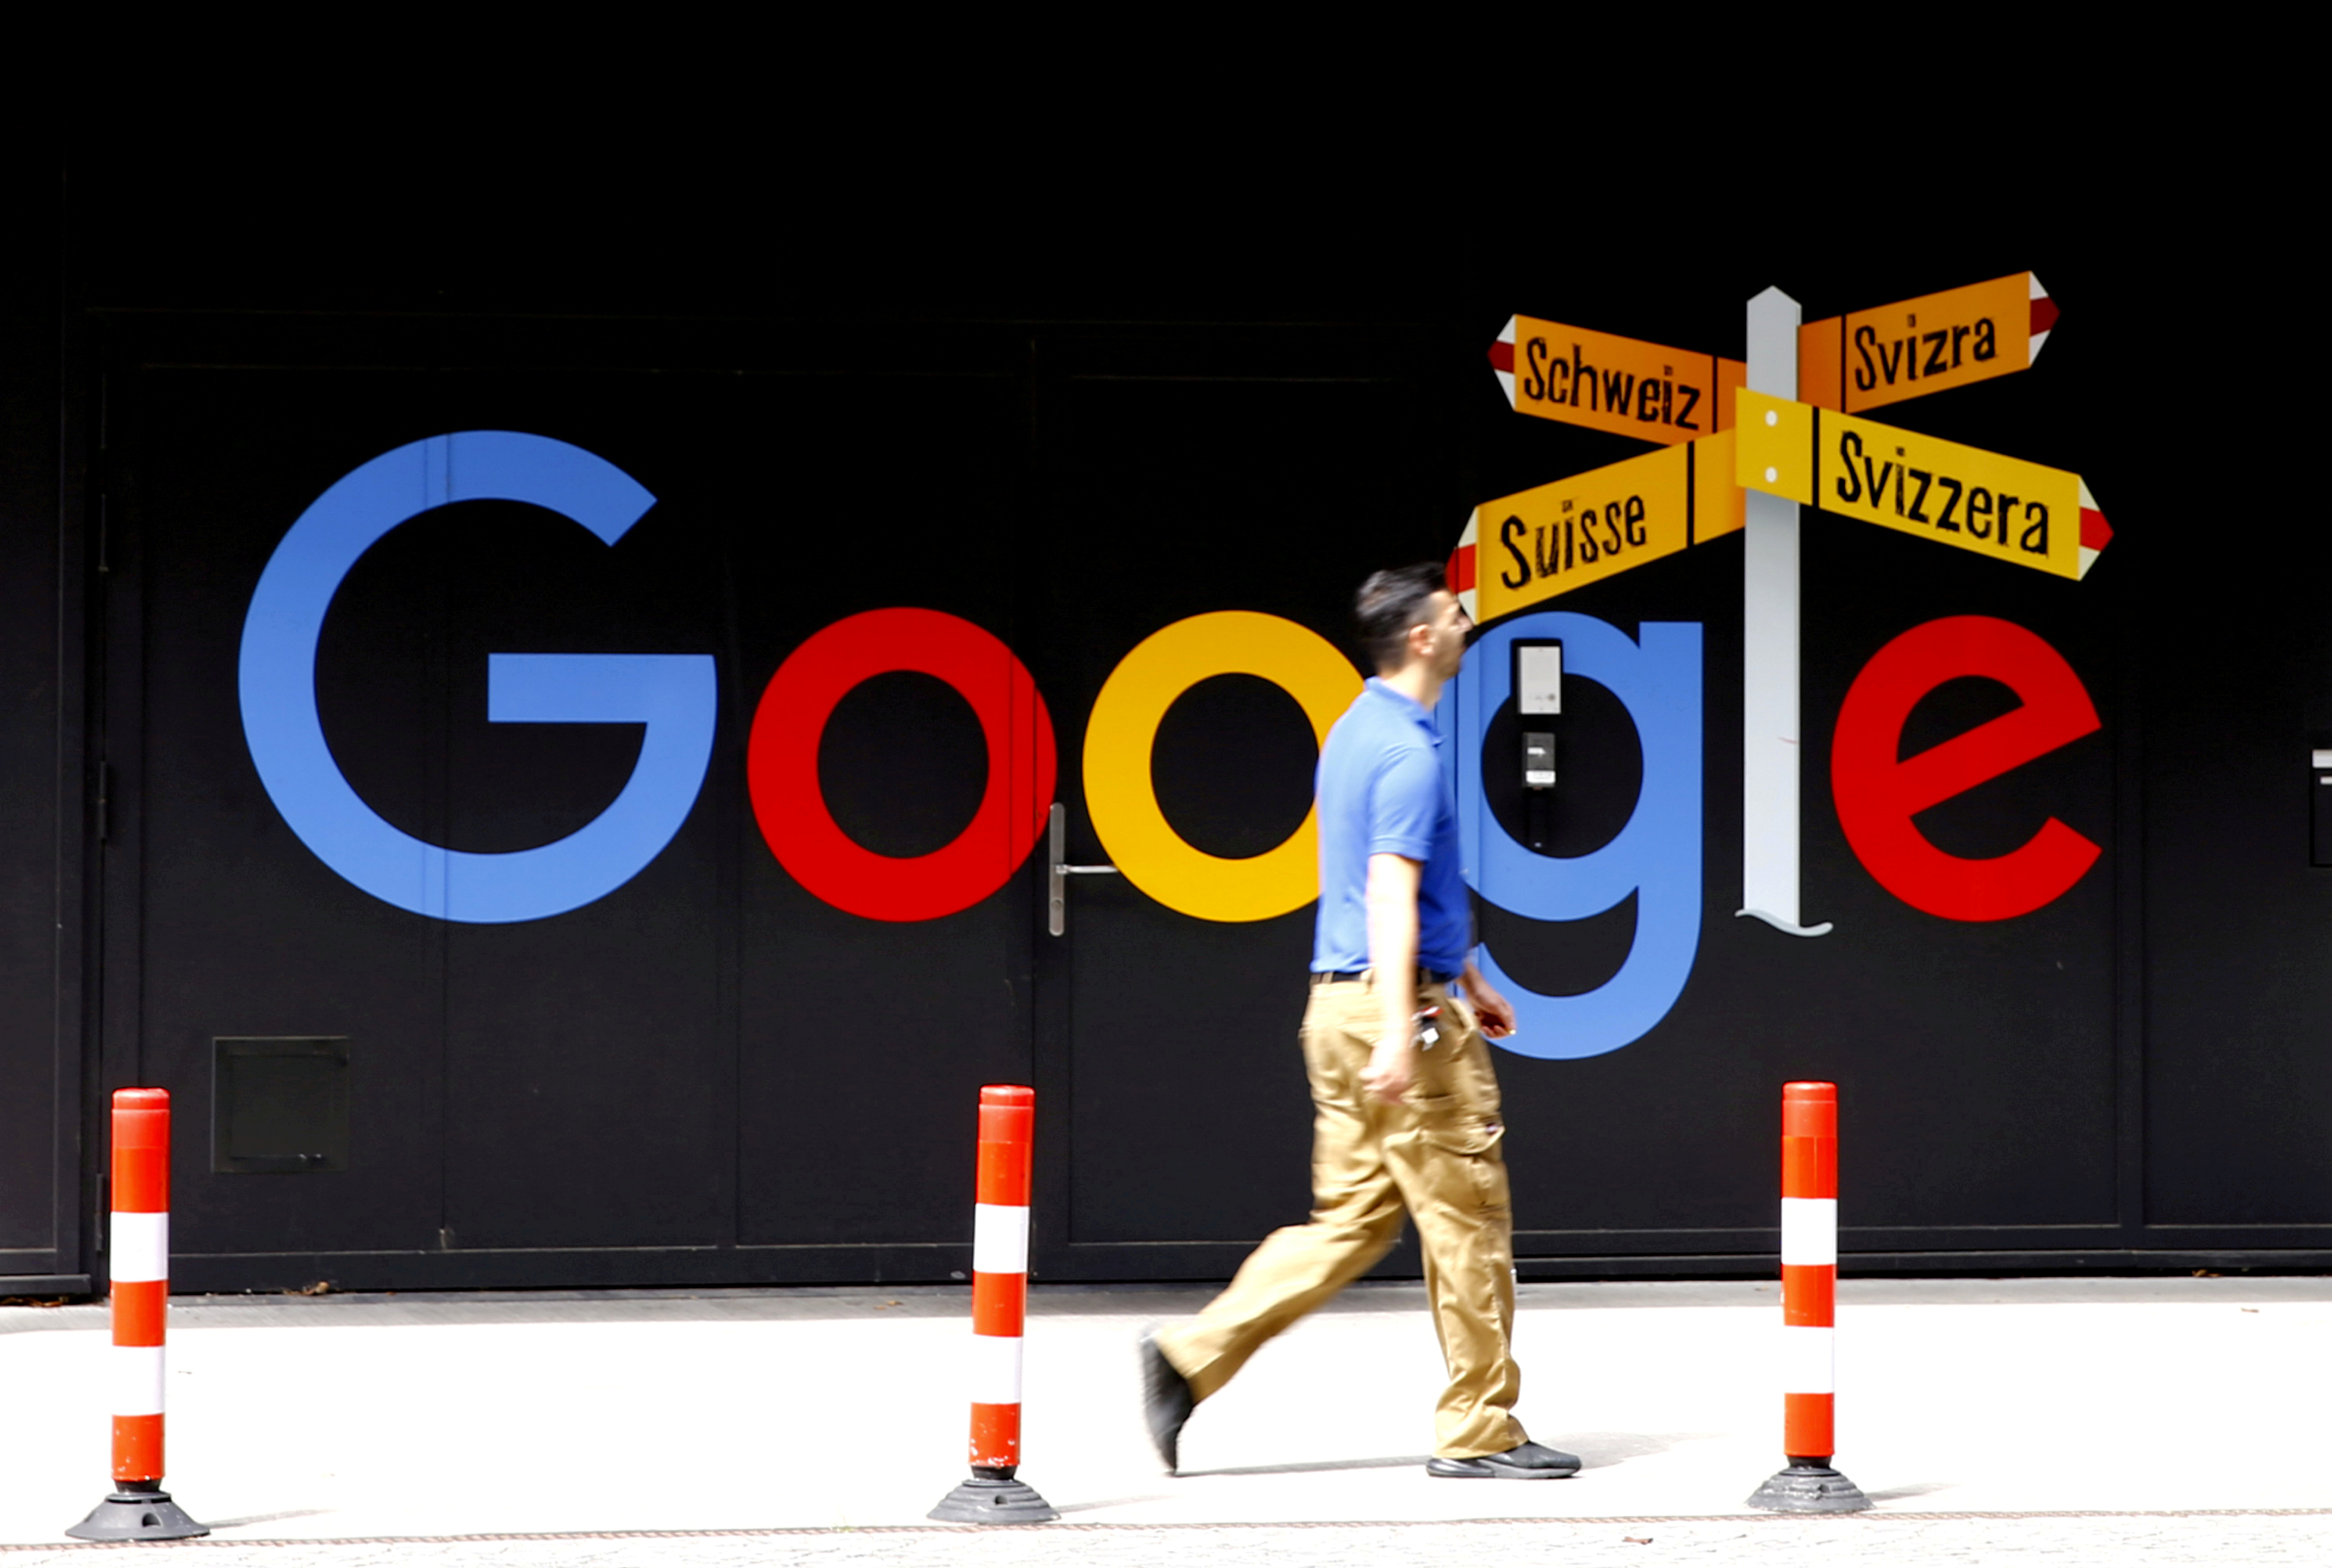 A man walks past a logo of Google in front of at an office building in Zurich, Switzerland July 1, 2020.   REUTERS/Arnd Wiegmann/File Photo